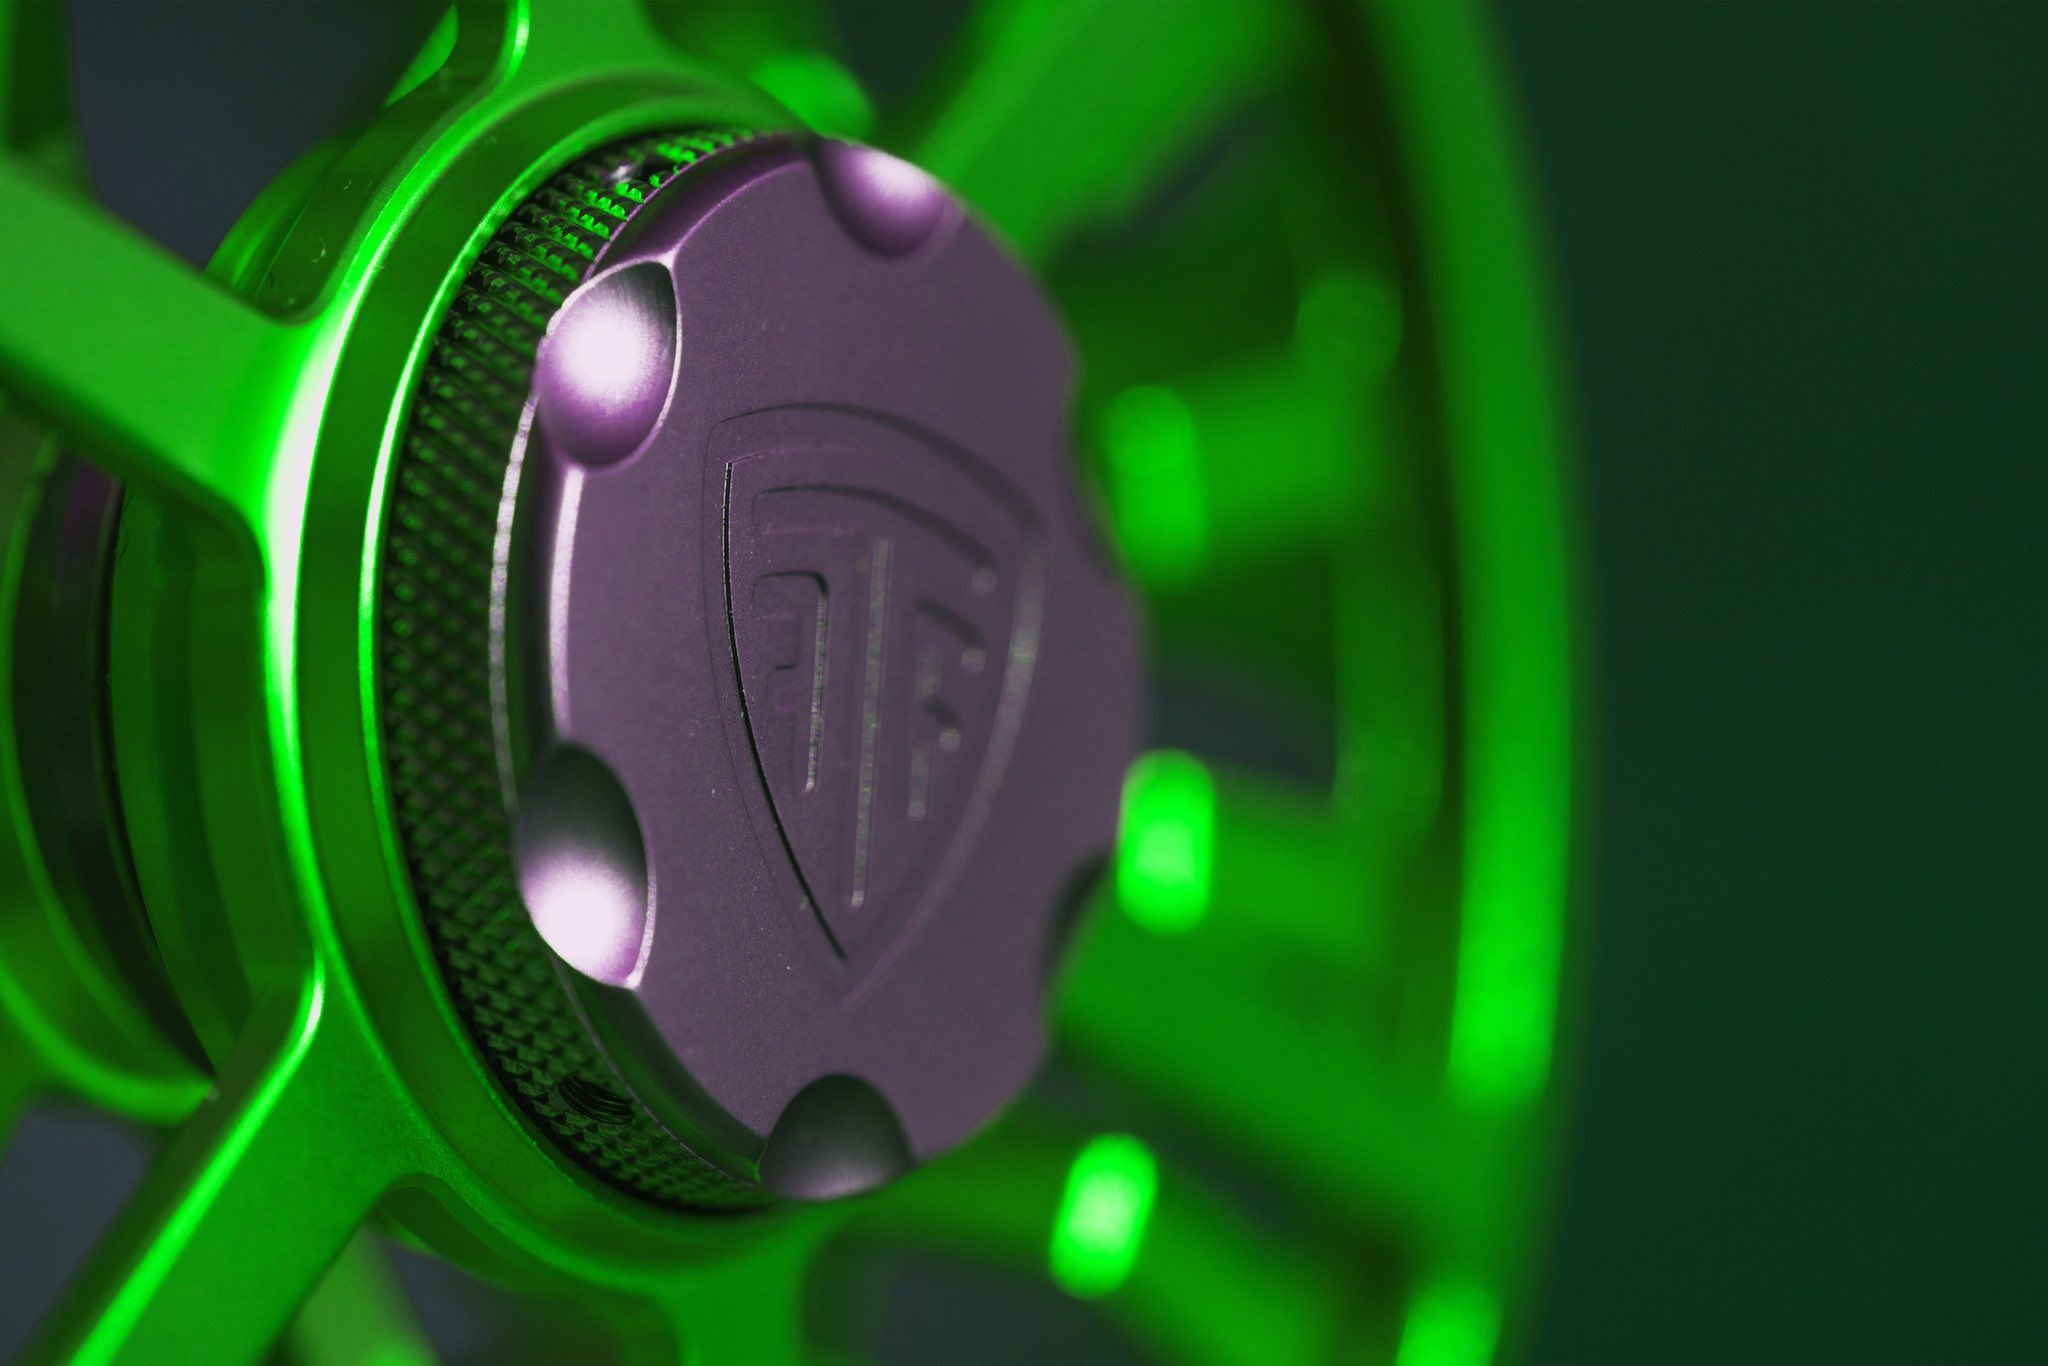 From crystal clear to a blur!  https://t.co/APWZPe06eK  #passionforthewater #flyfishing #flyfish #flytying #fishing https://t.co/IgtDYCF2hi http://ift.tt/2pWgBaF